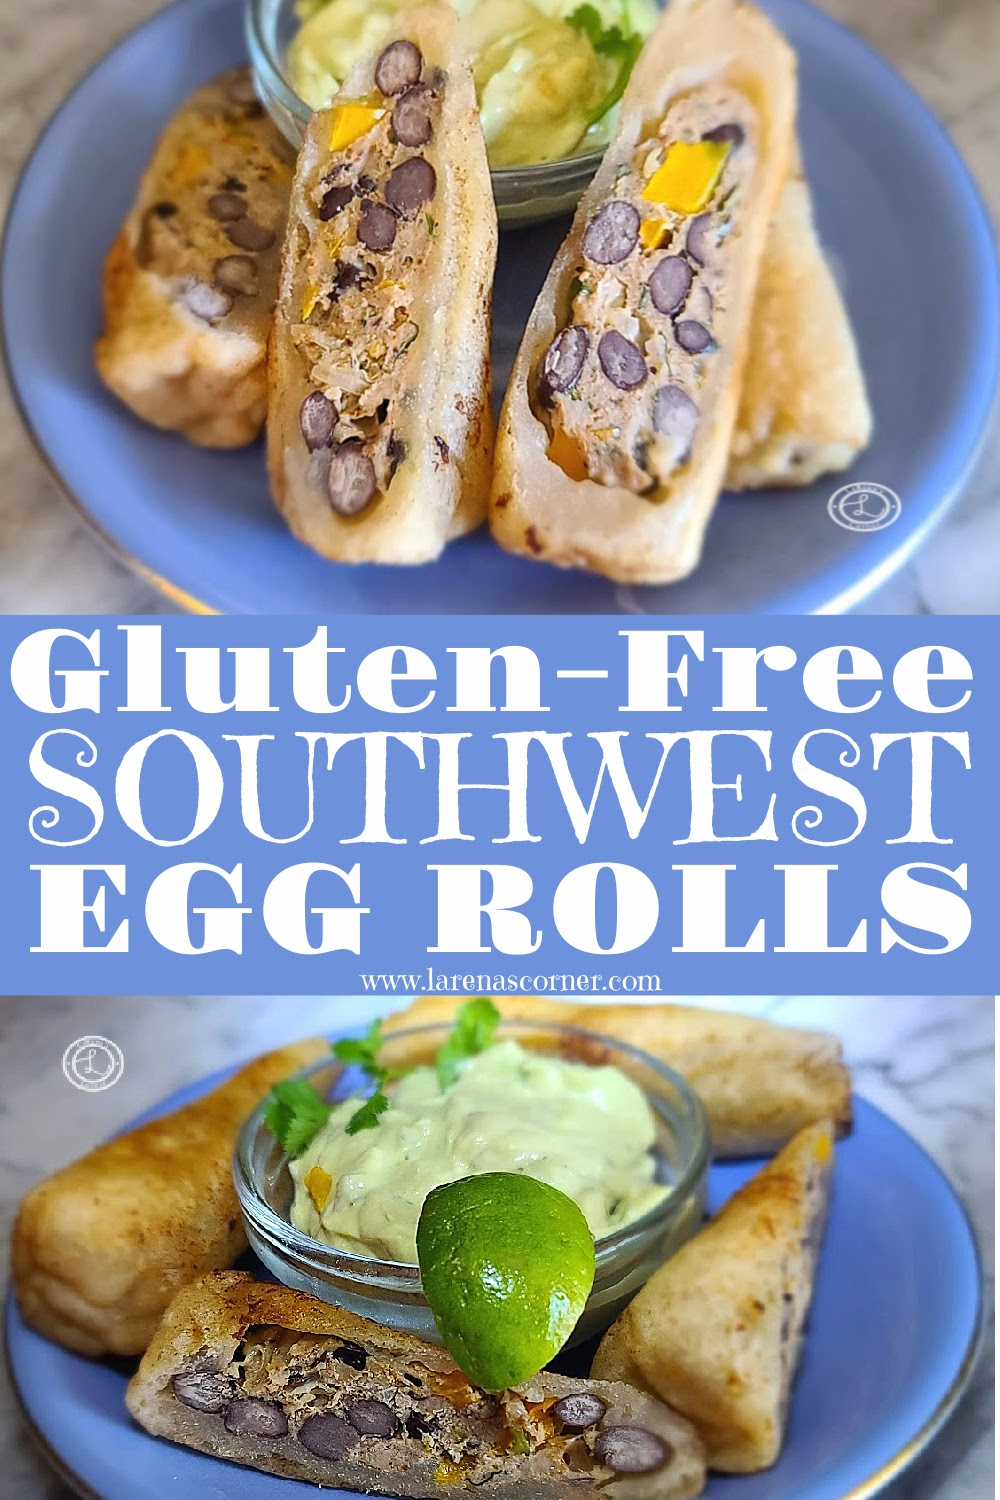 2 pictures of egg rolls on a plate.